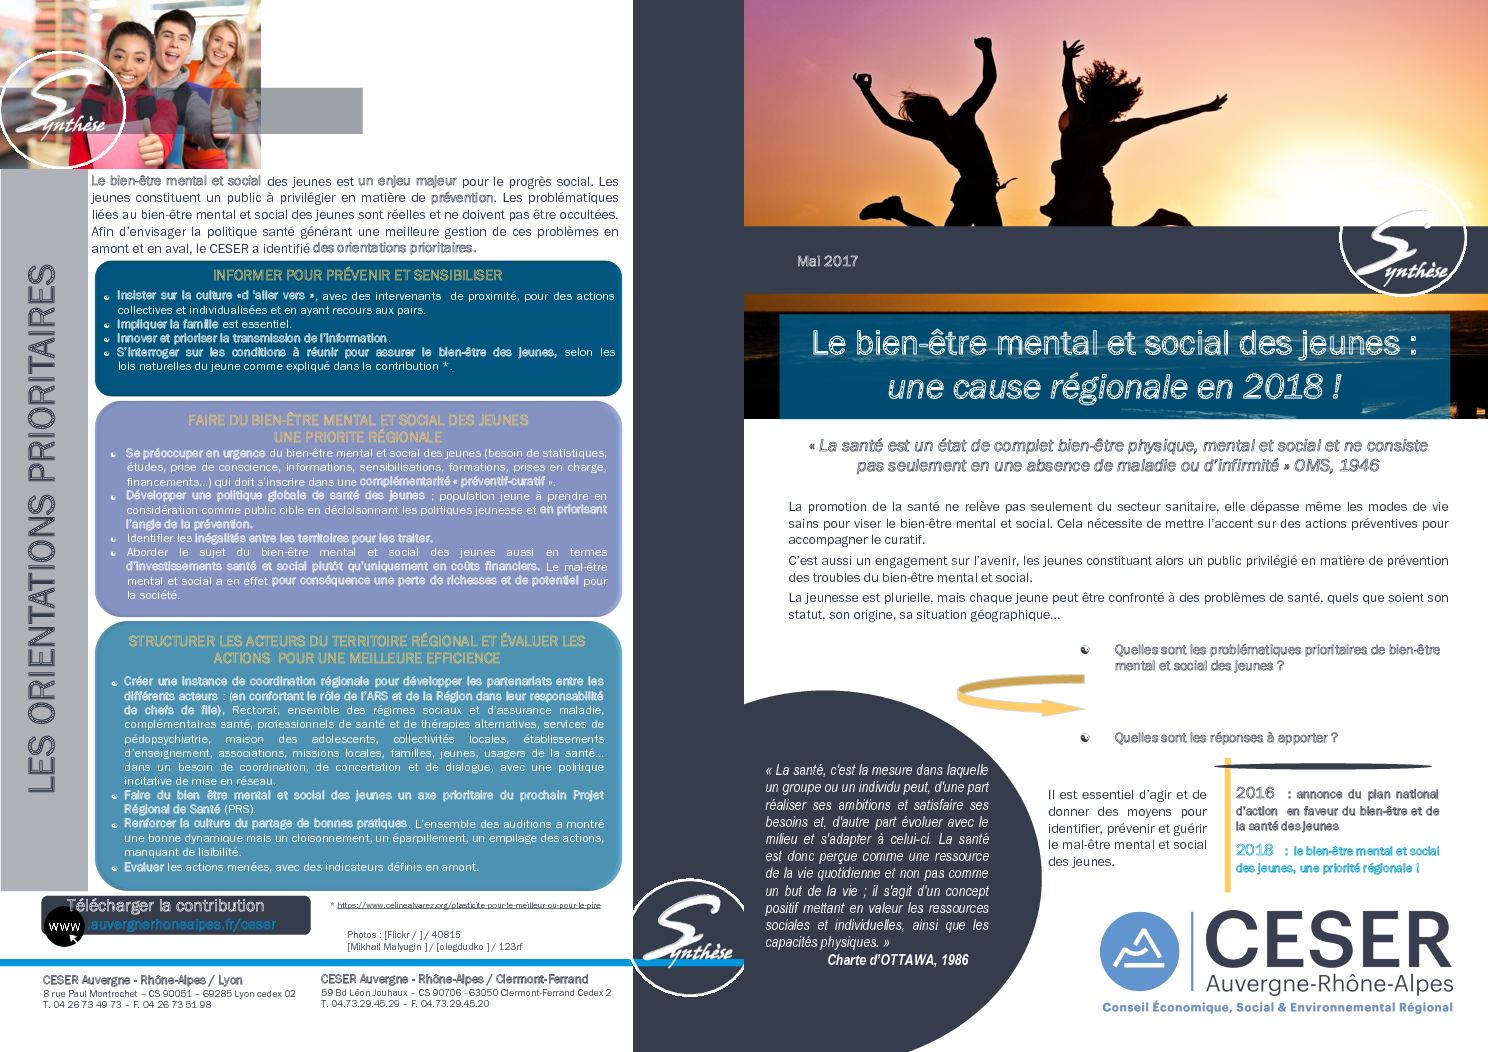 rencontres nationales ced